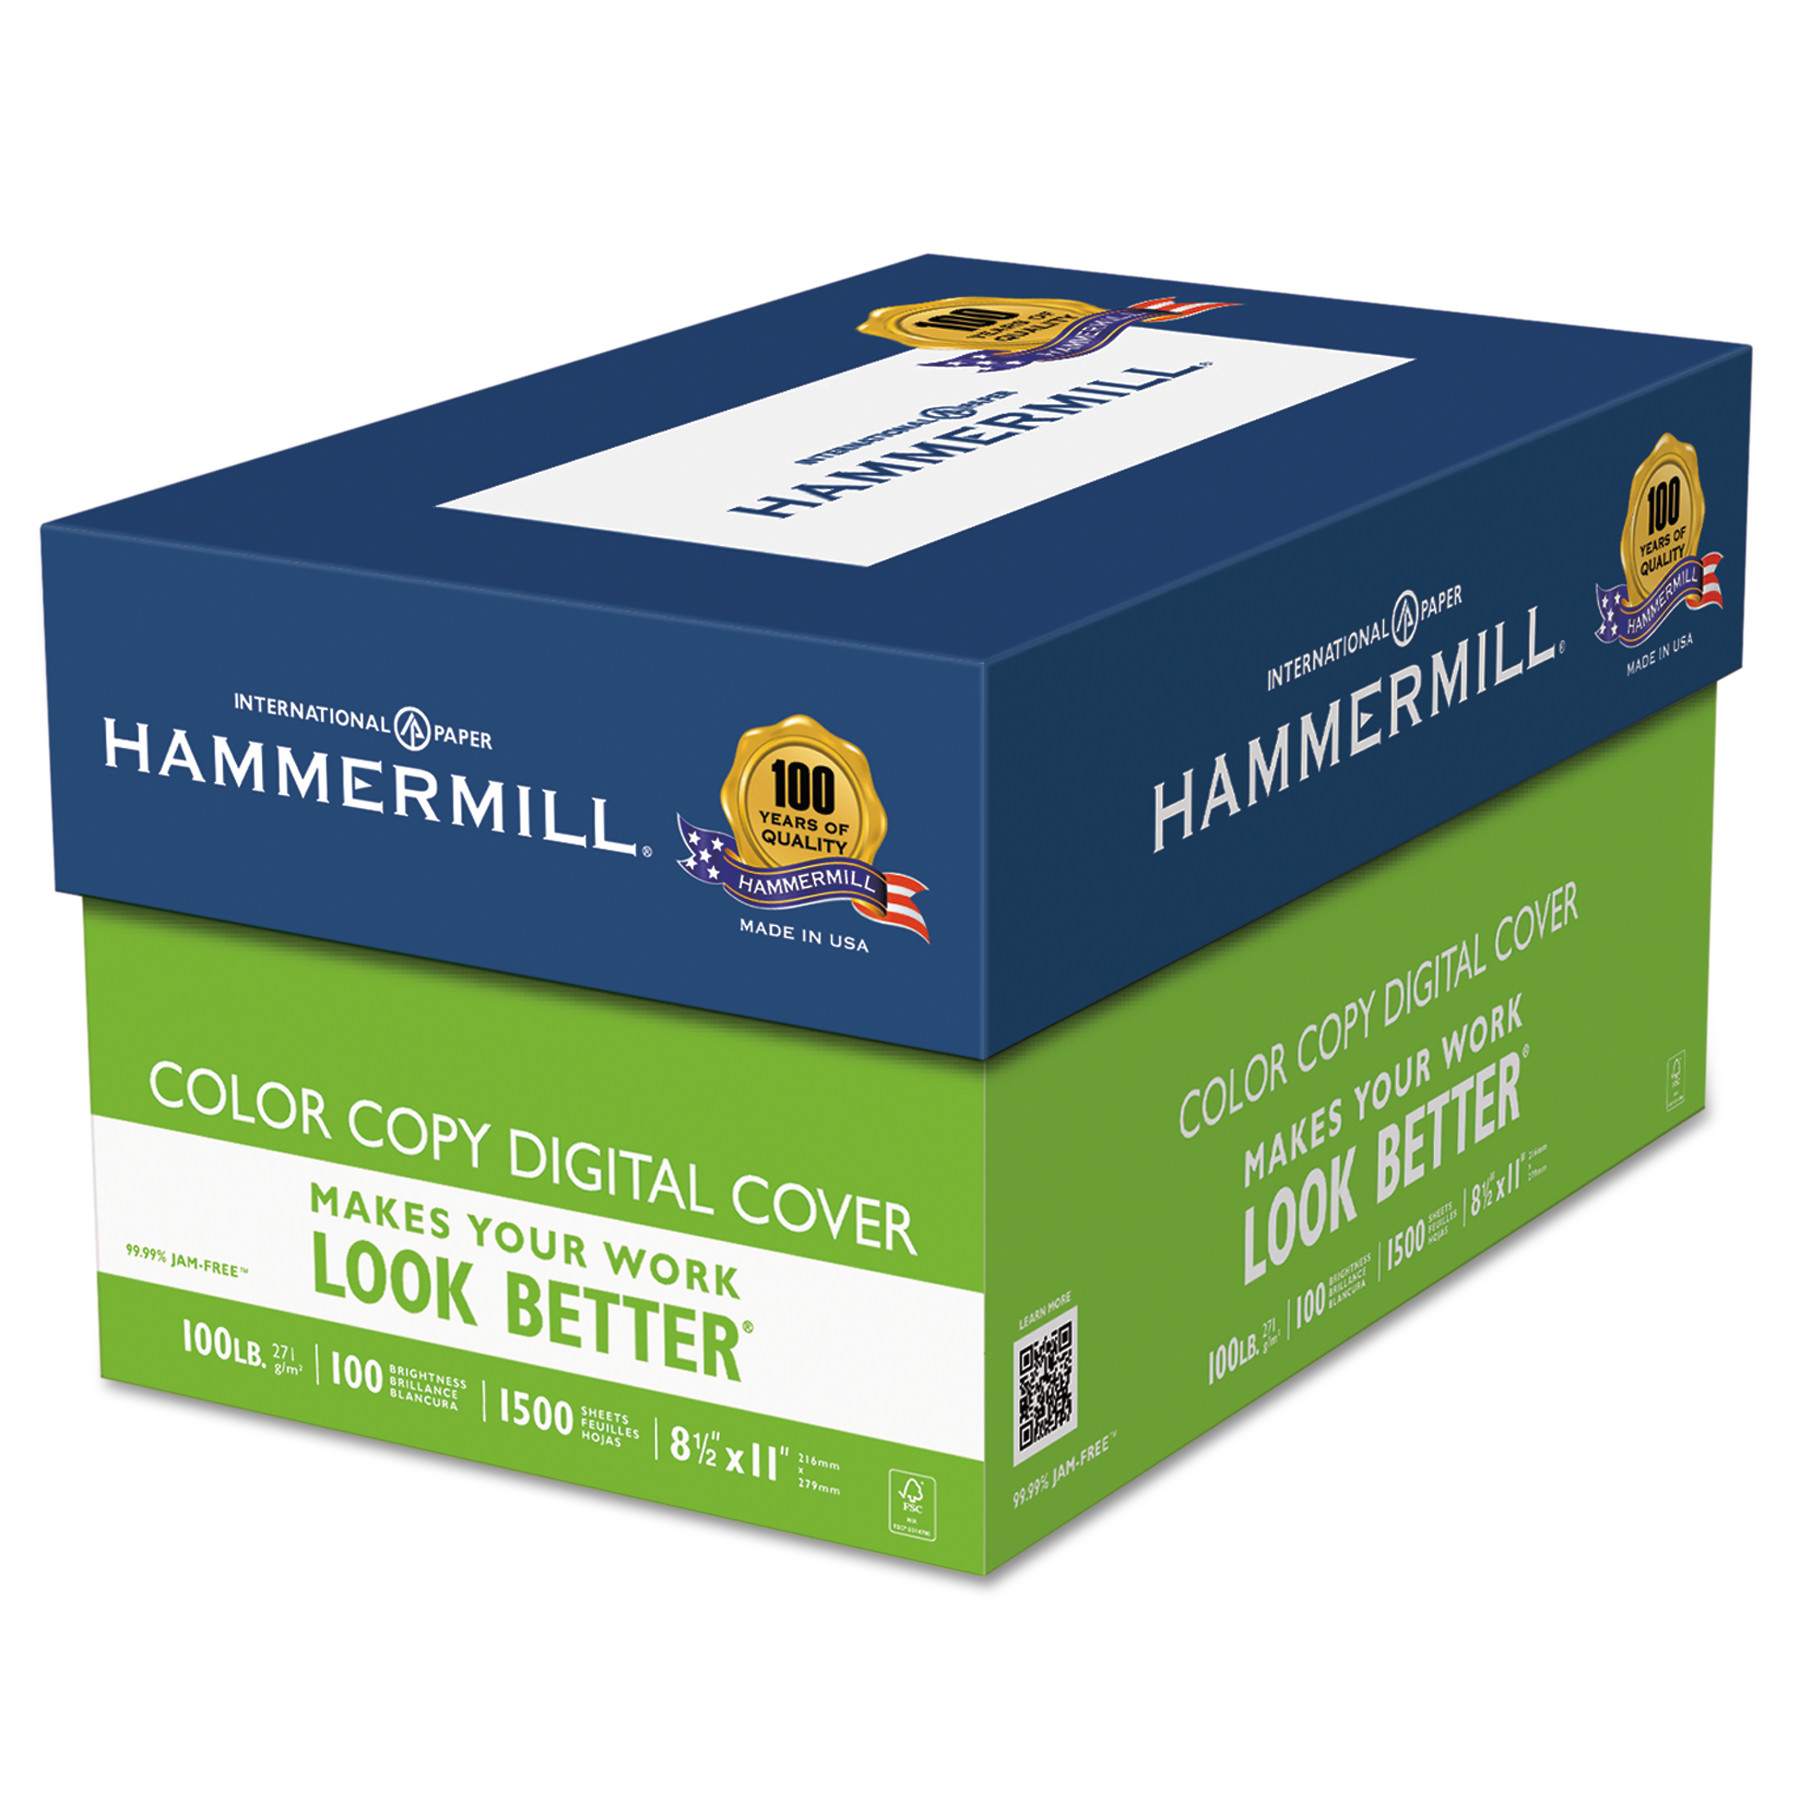 Hammermill Copier Digital Cover Stock, 100 lbs., 8 1/2 x 11, Photo White, 1500 Sheets